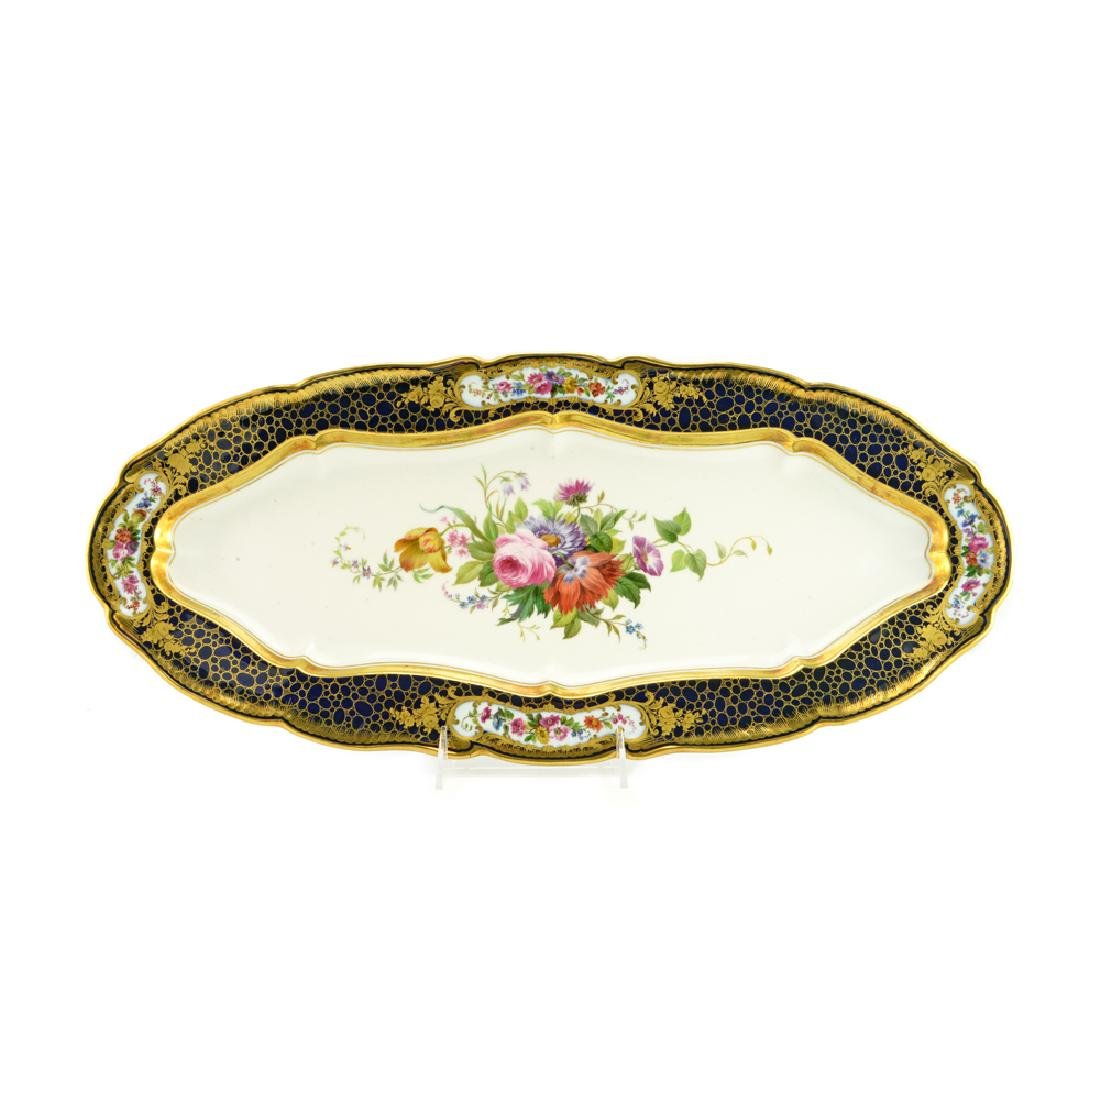 Large Russian Imperial porcelain tray